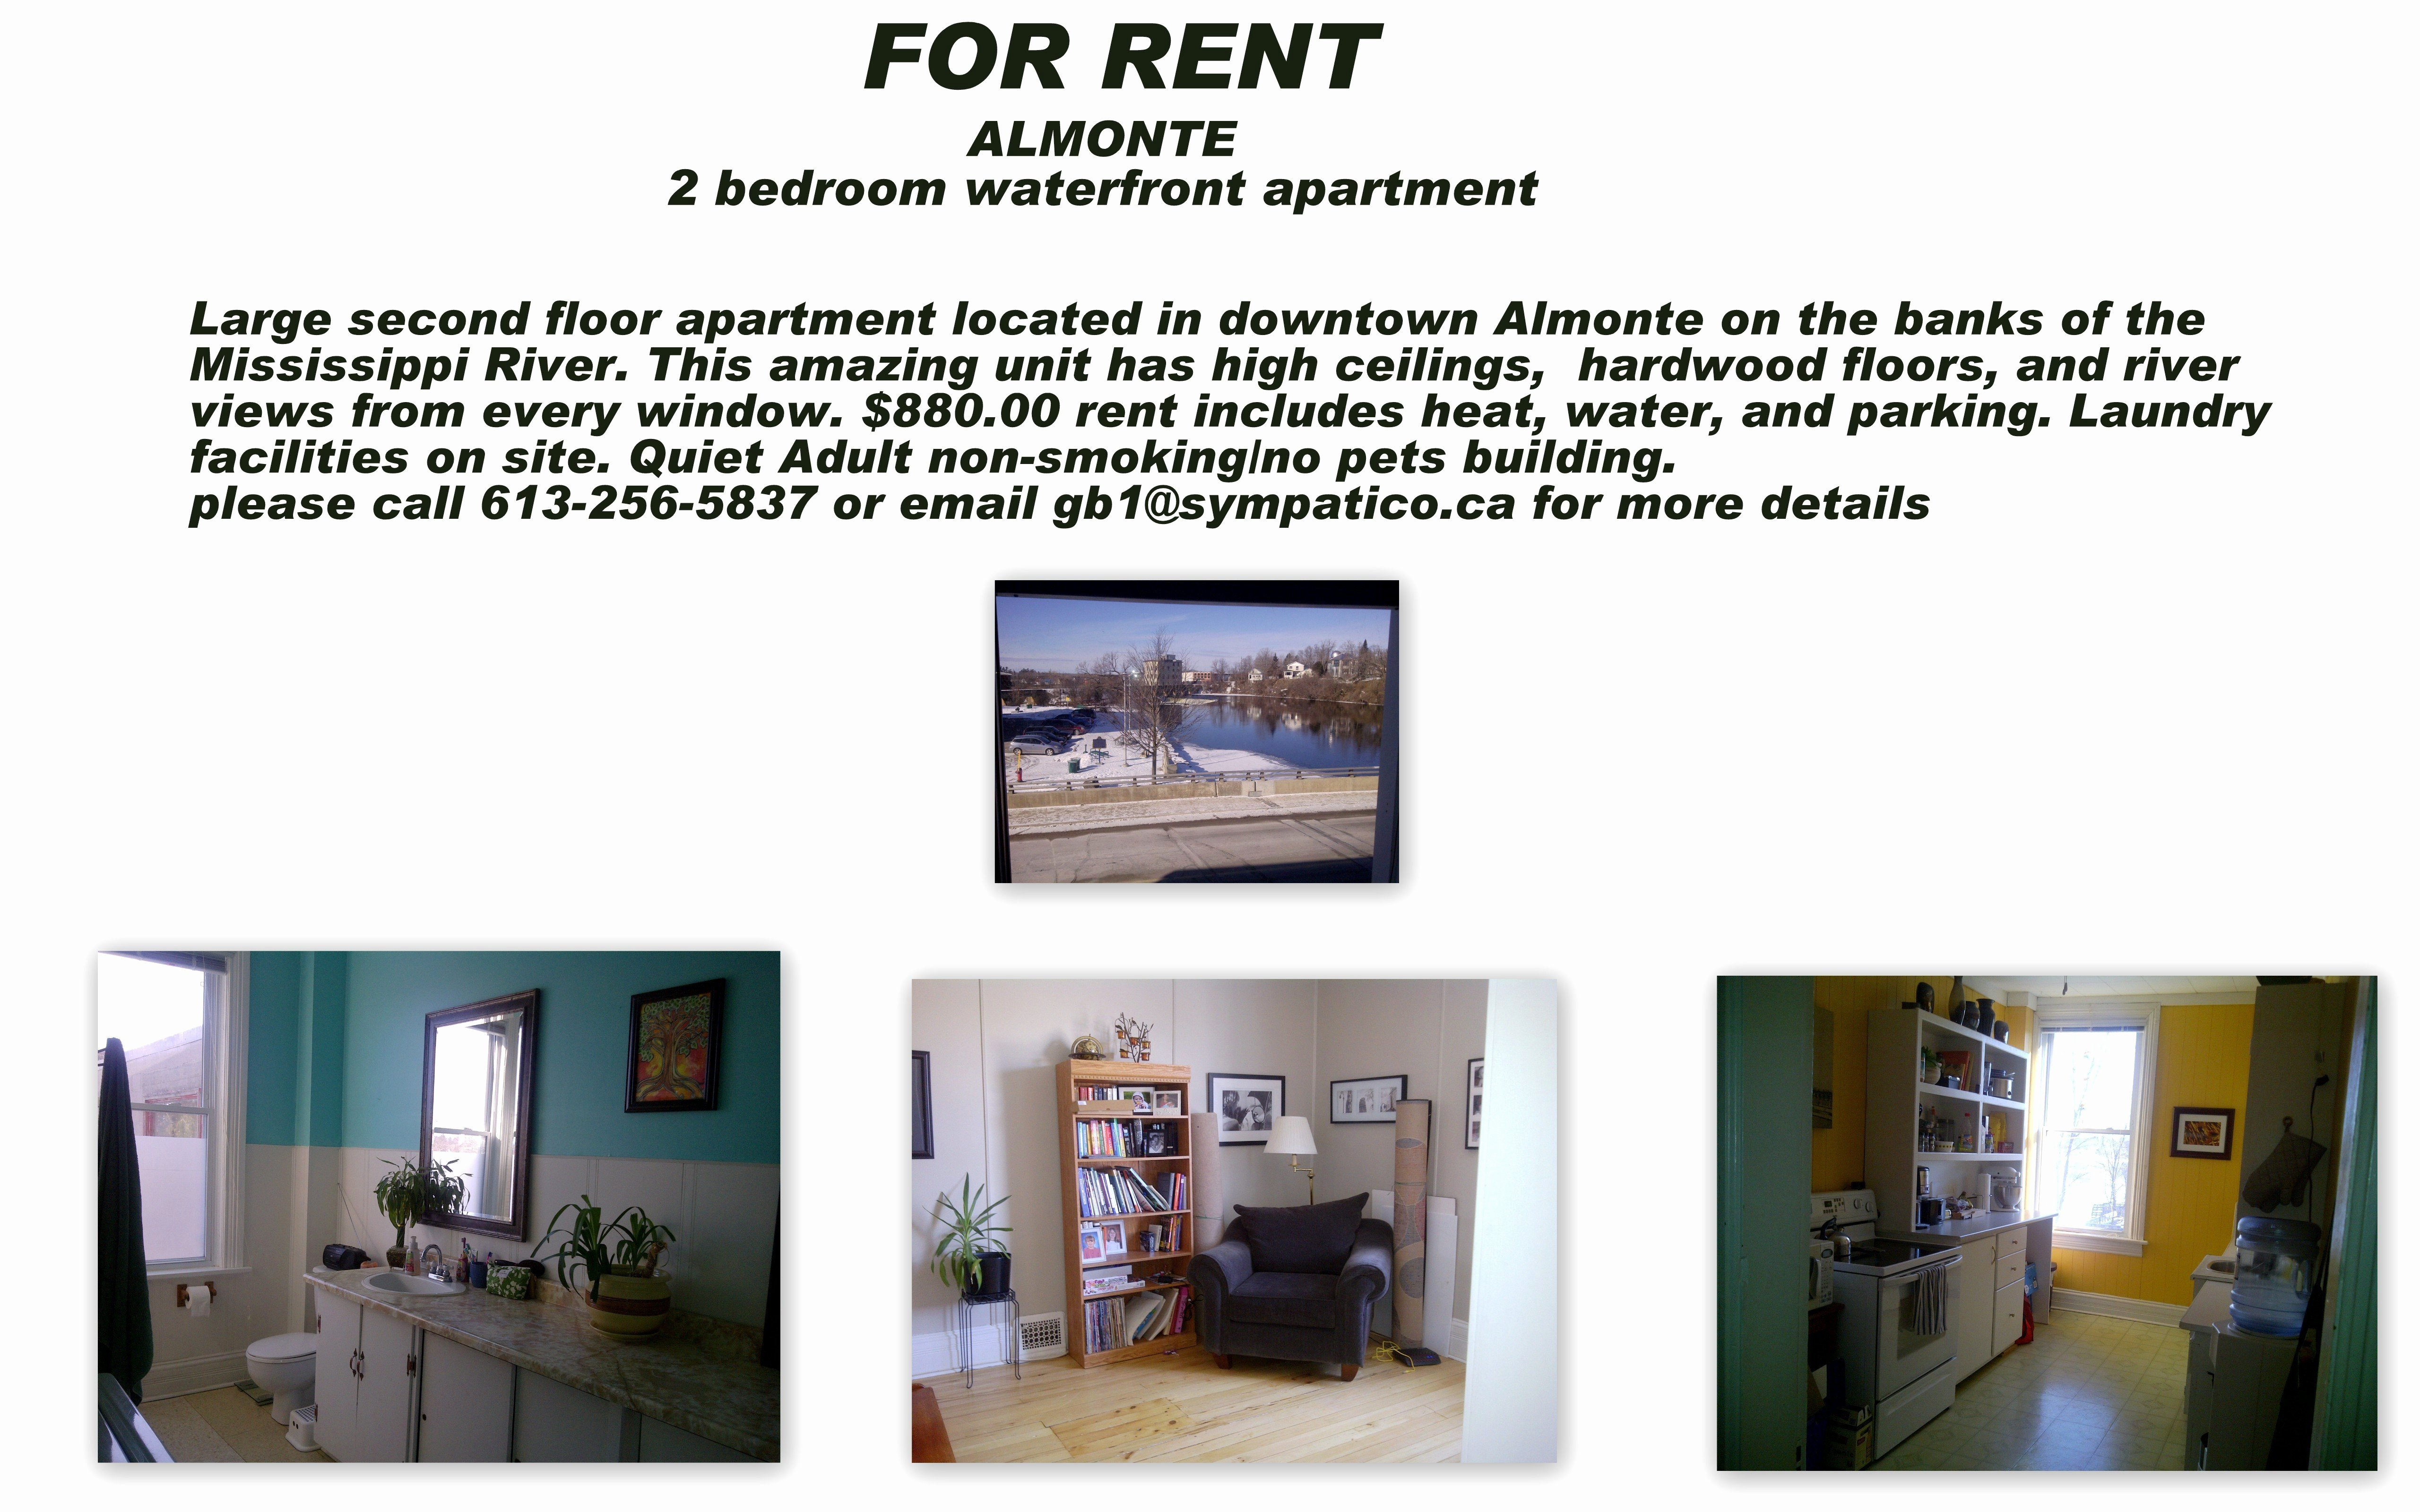 Room for Rent Flyers Awesome Apartment for Rent Ad Apartment for Rent Advertisement